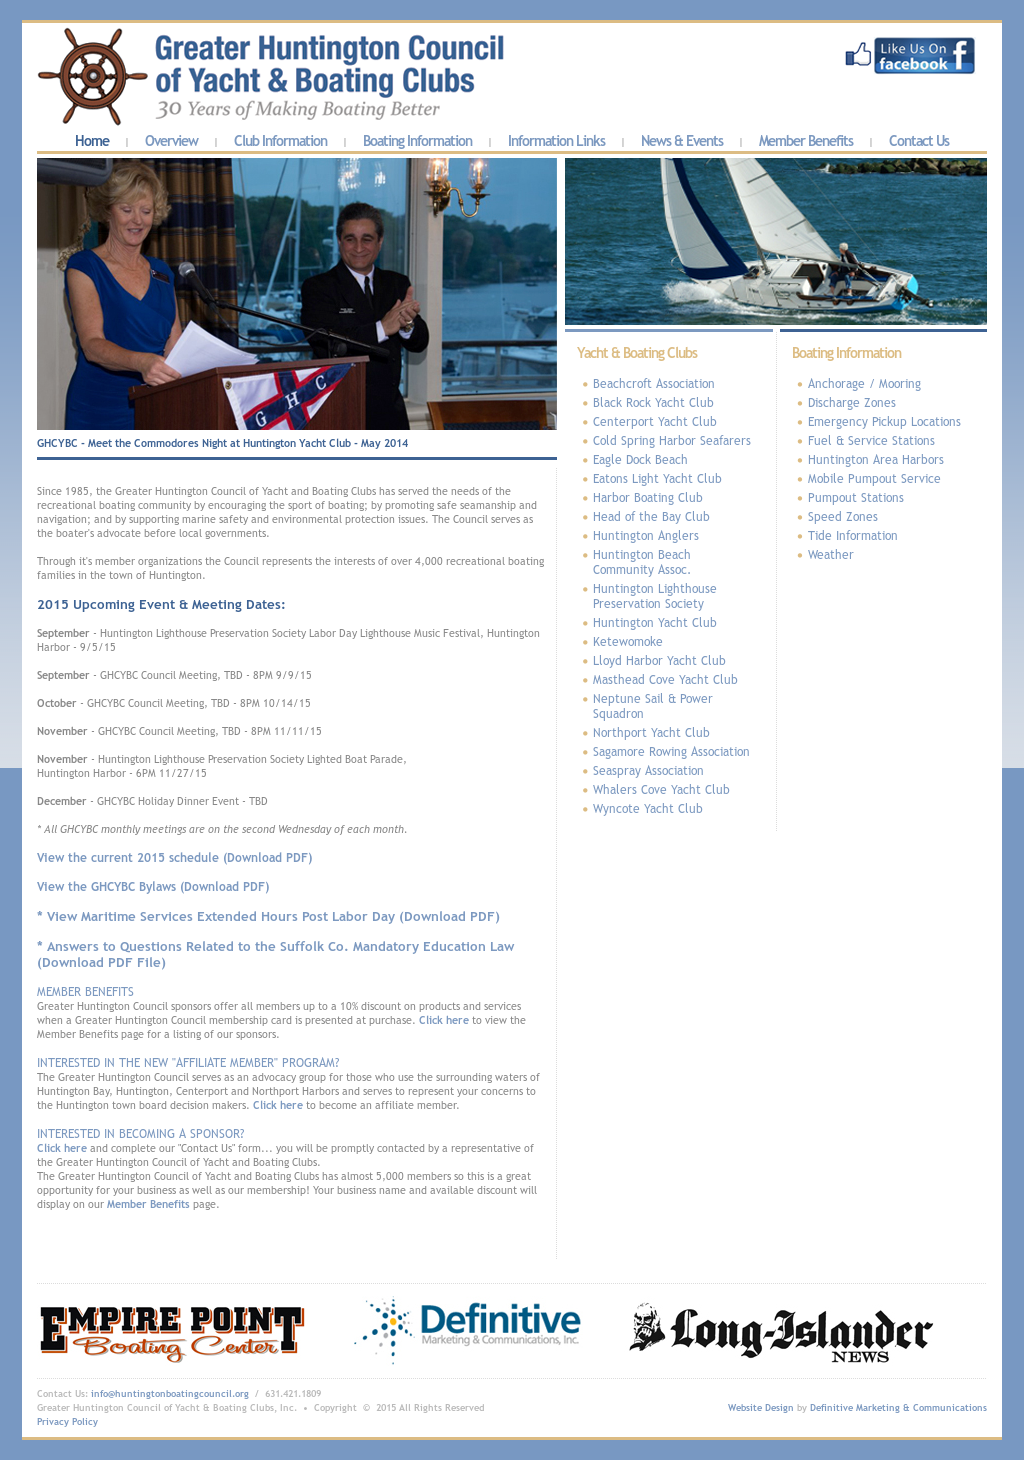 Greater Huntington Council Of Yacht And Boating Clubs-ghcybc